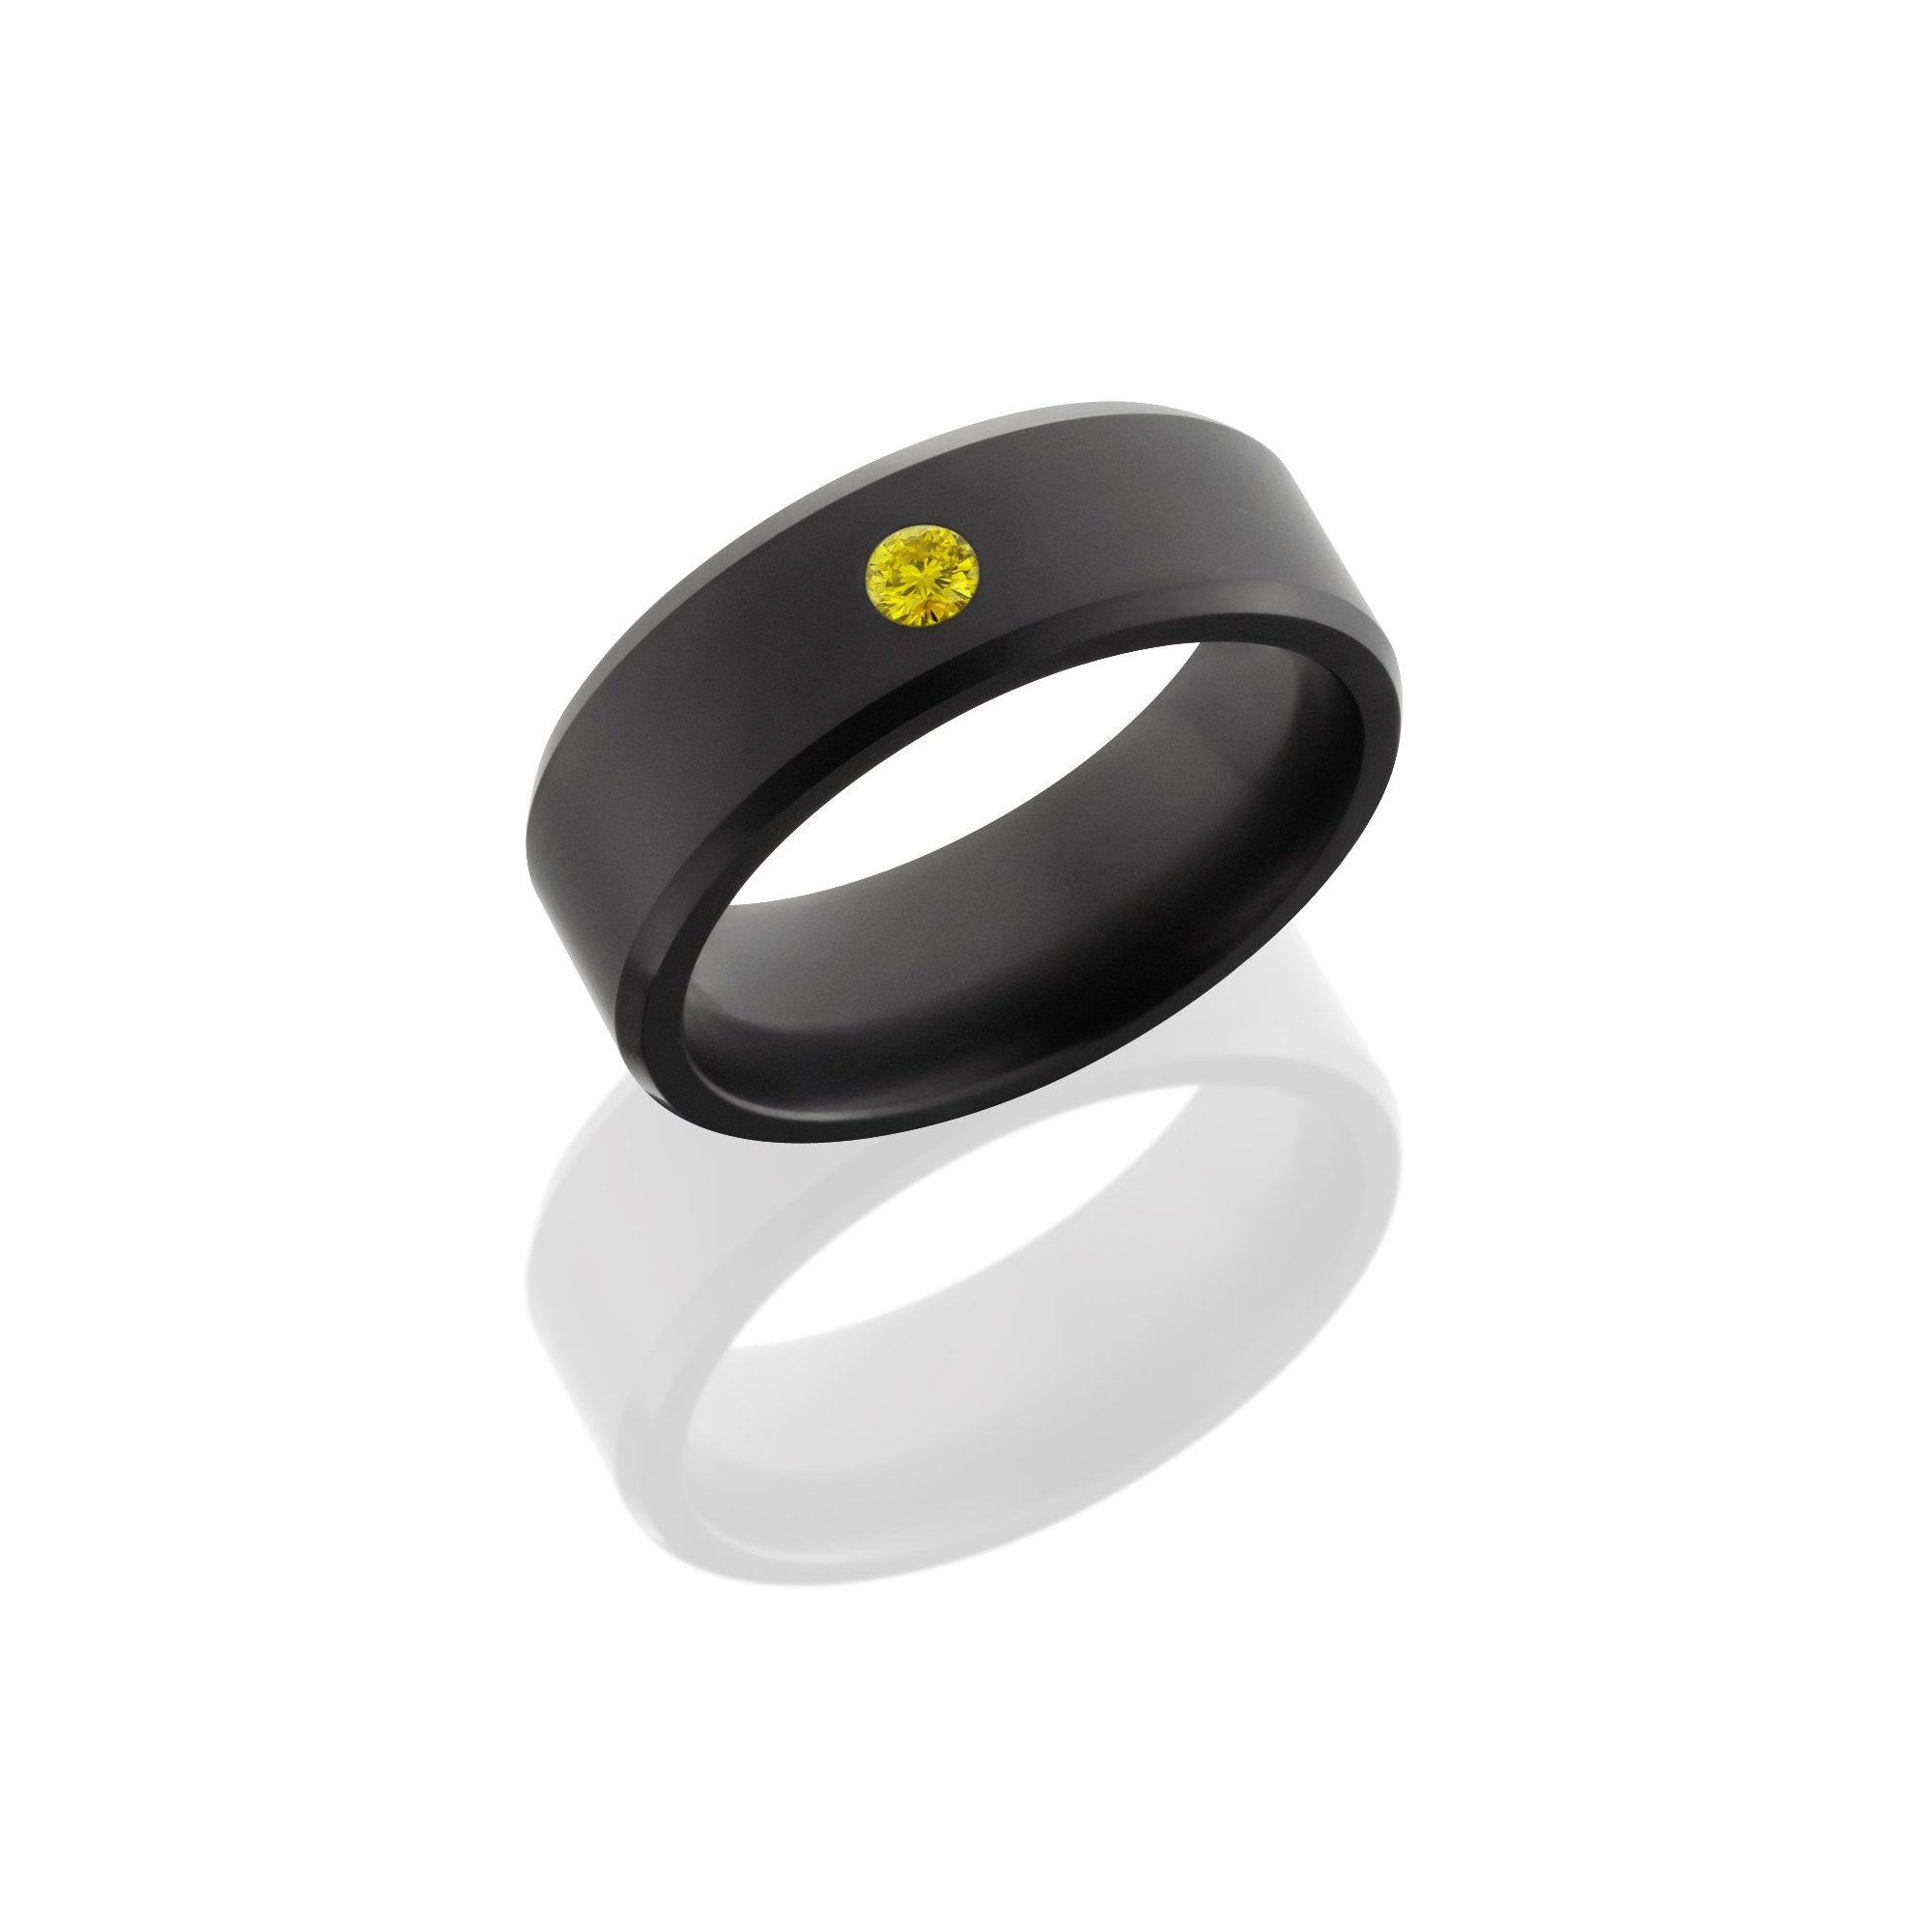 Matte Ares Band with Yellow Diamond Inset - Talisman Collection Fine Jewelers